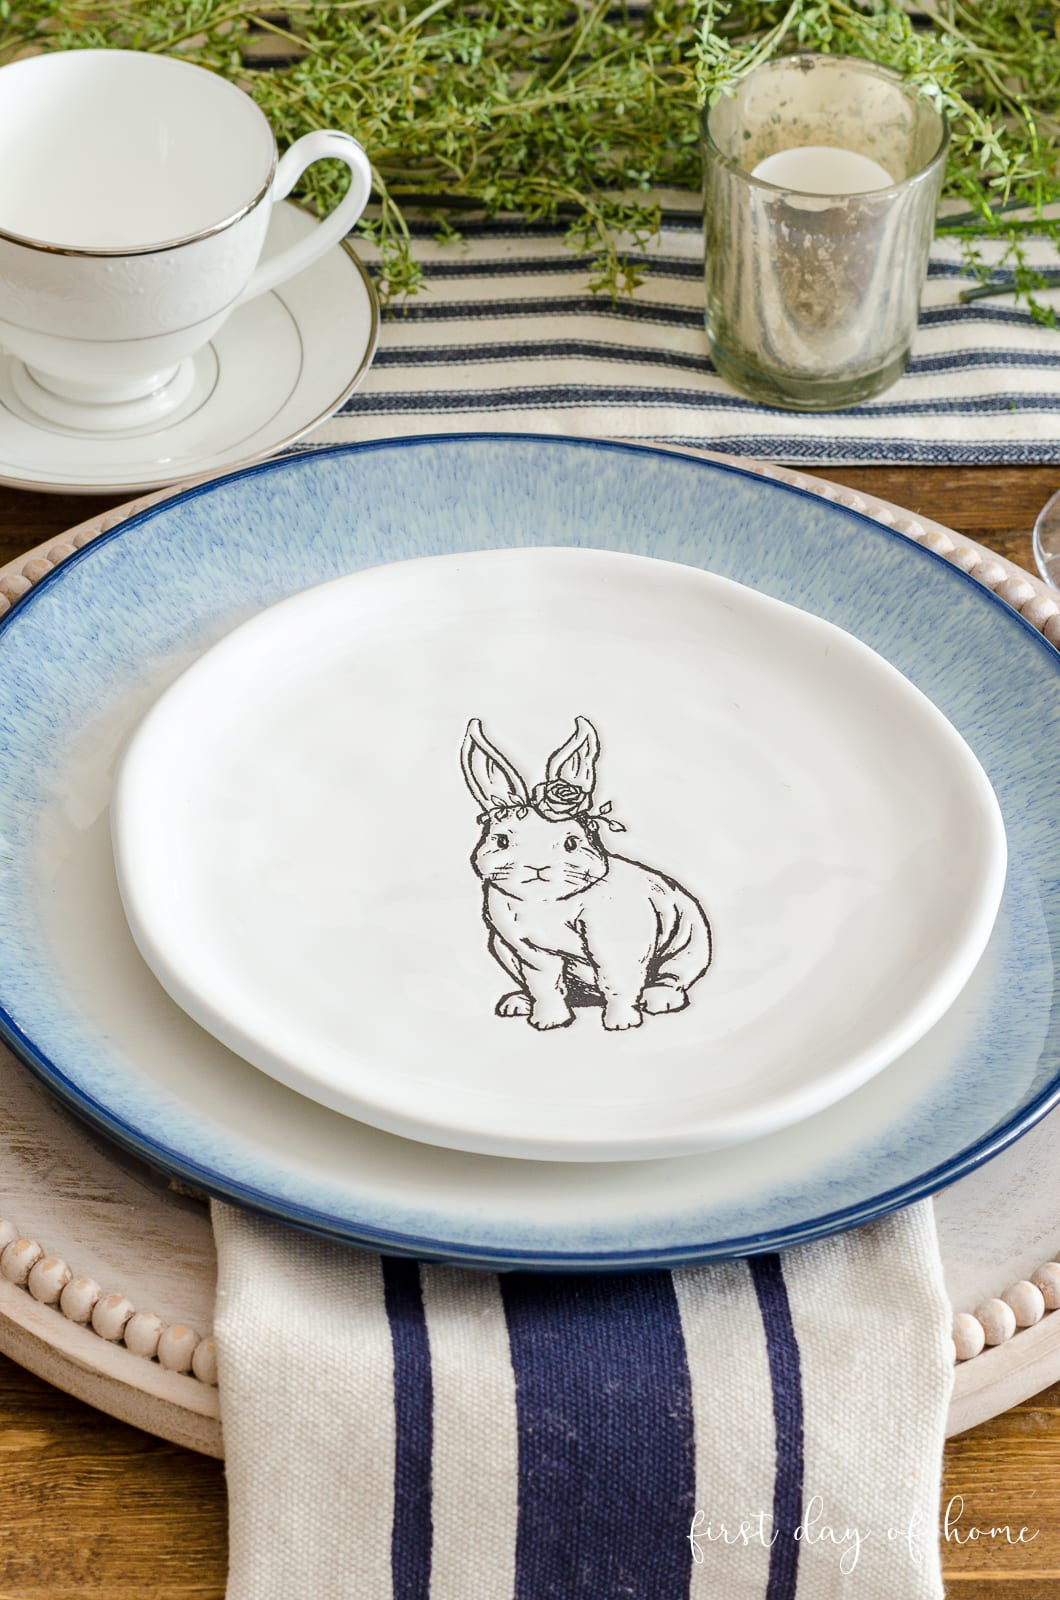 Black and white bunny salad plates on blue plate with whitewashed wooden charger plate